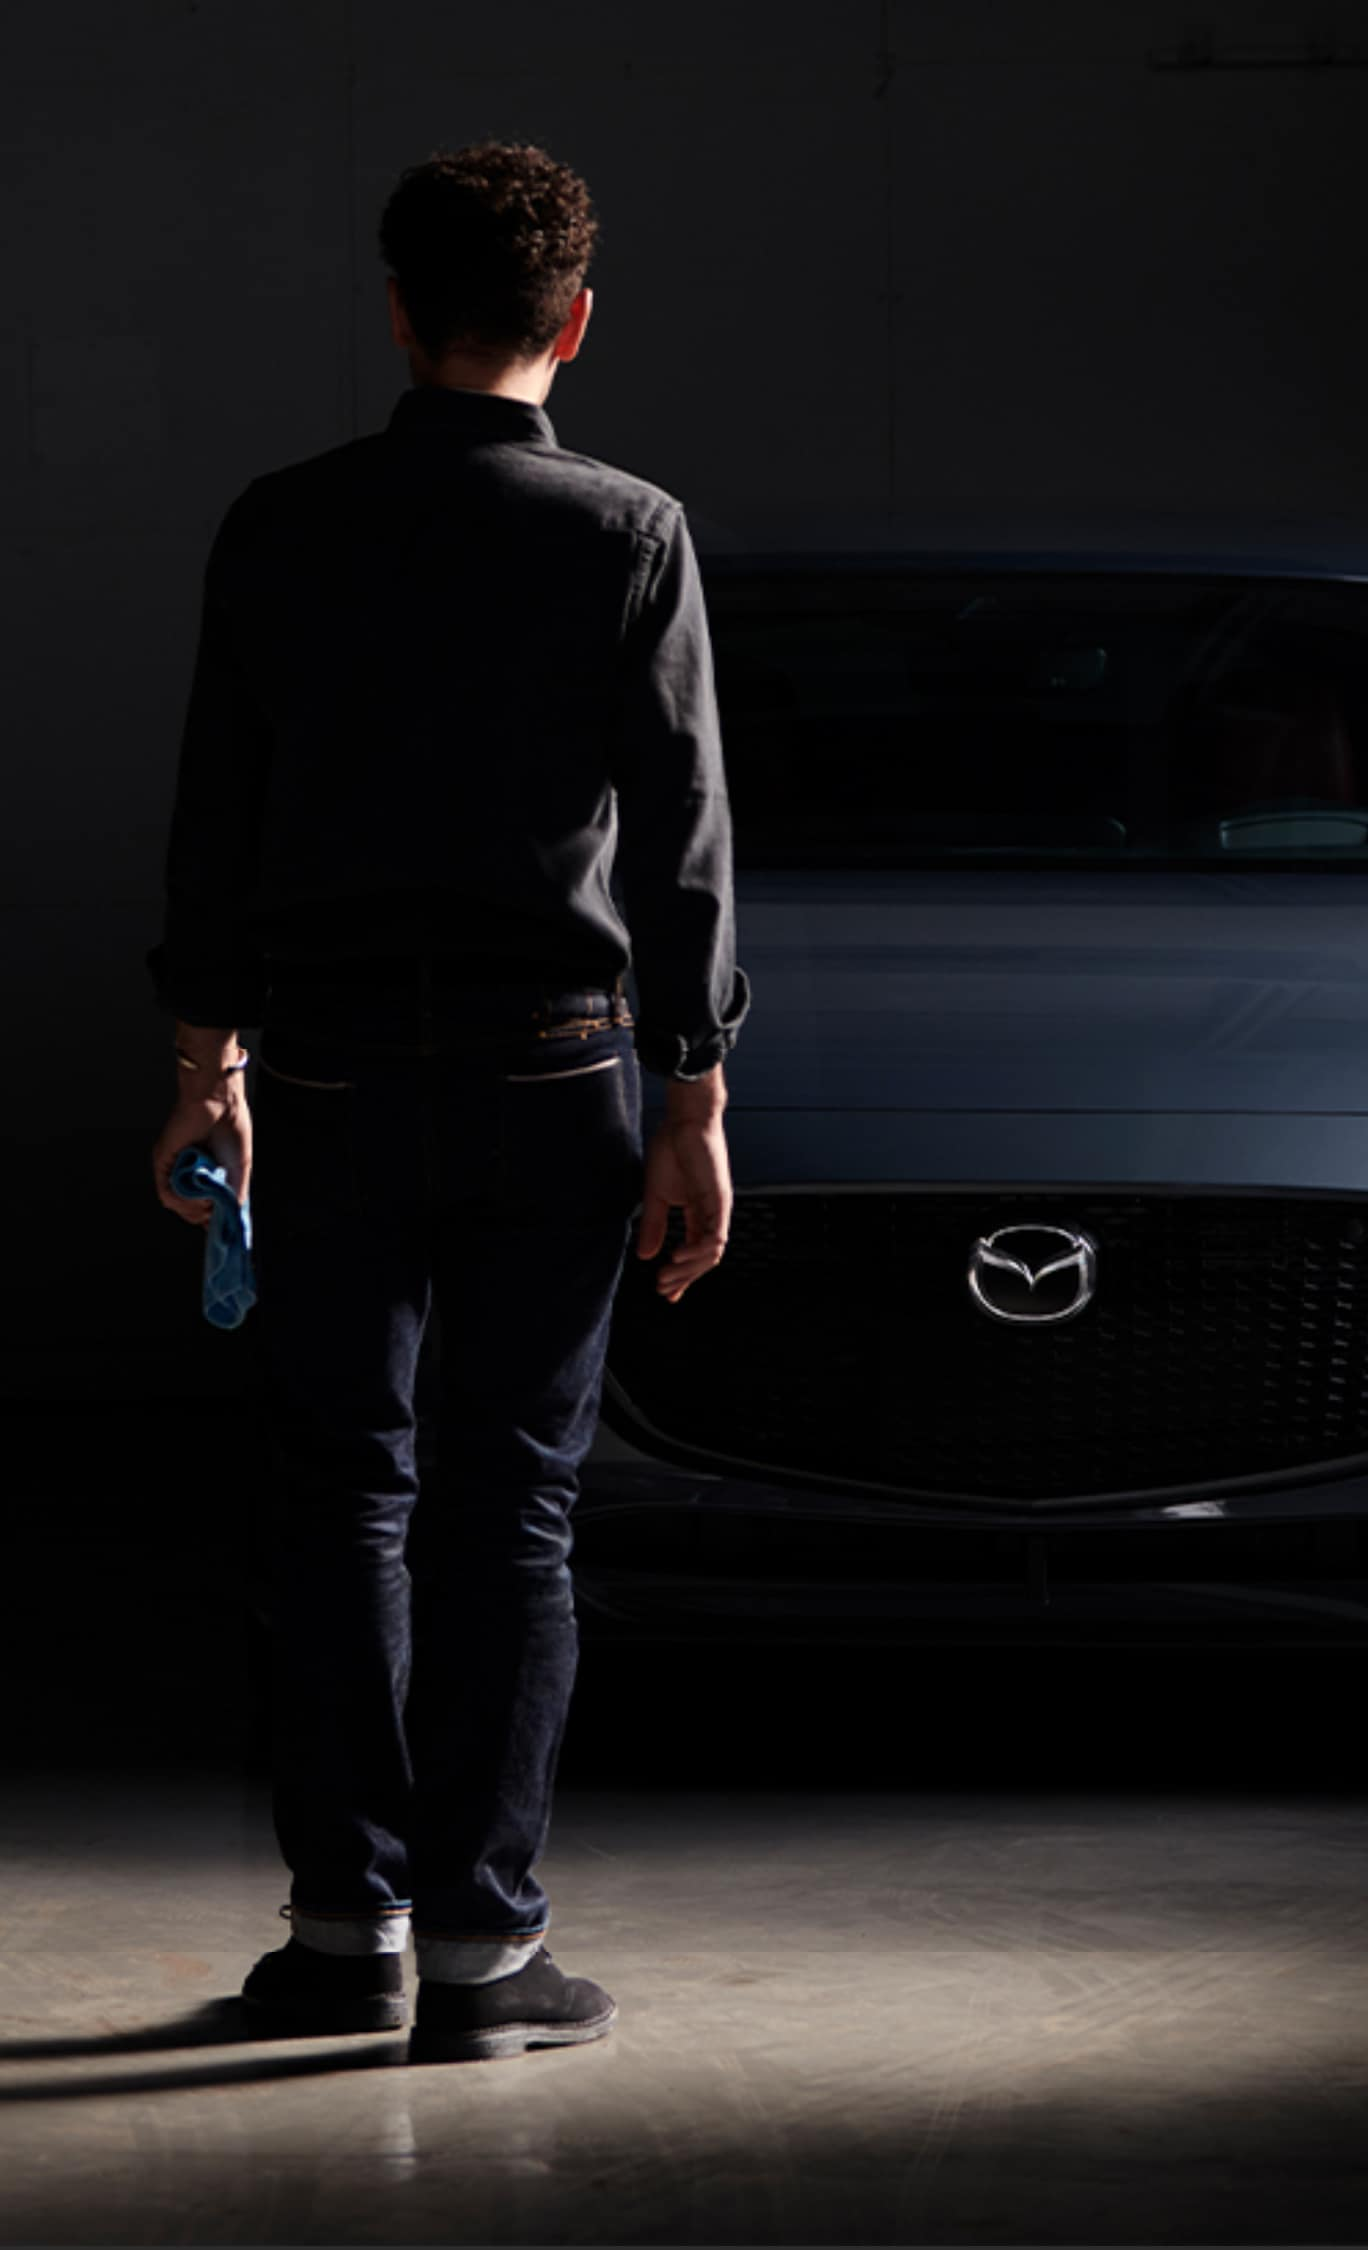 Man Walking Toward Mazda3